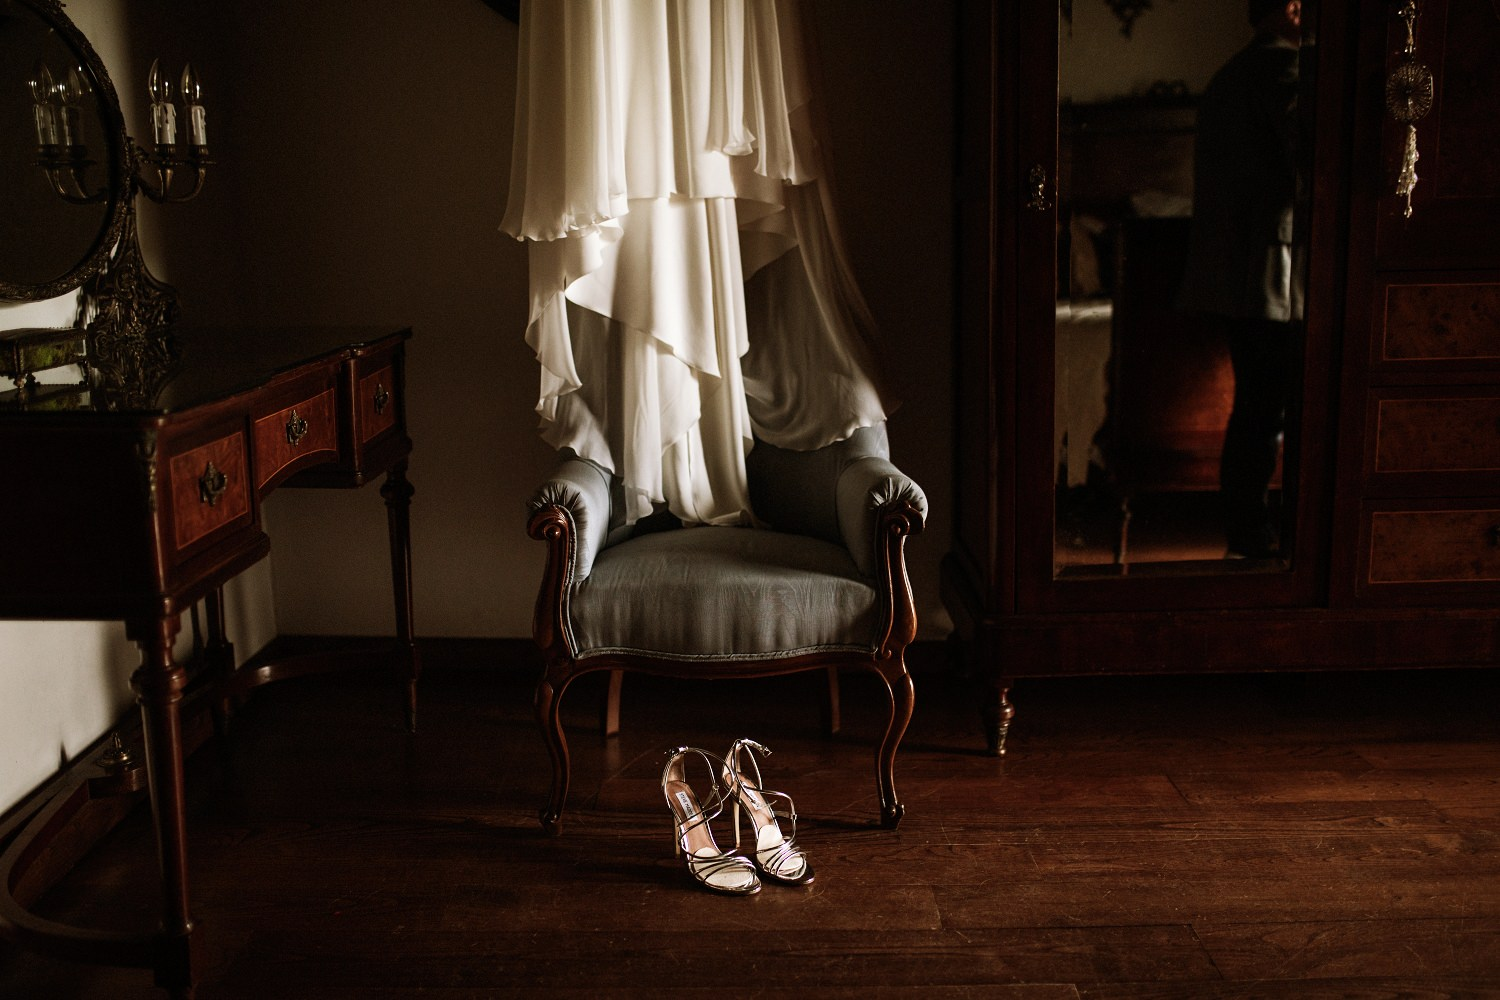 A beautiful portrait of a wedding gown draped over an antique chair